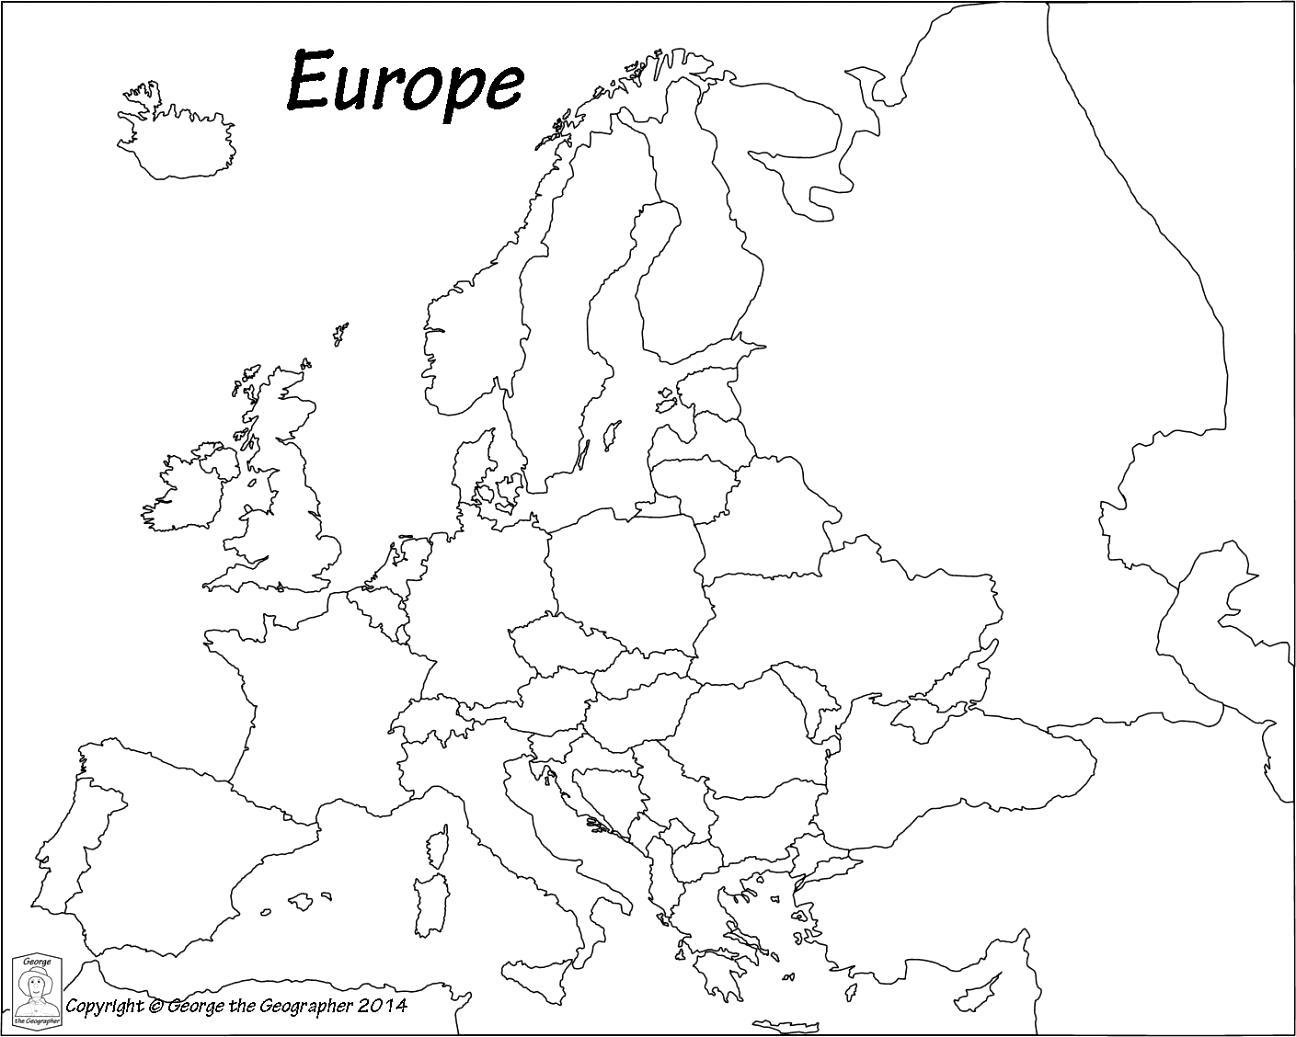 Europe clipart blank, Picture #30643 europe clipart blank